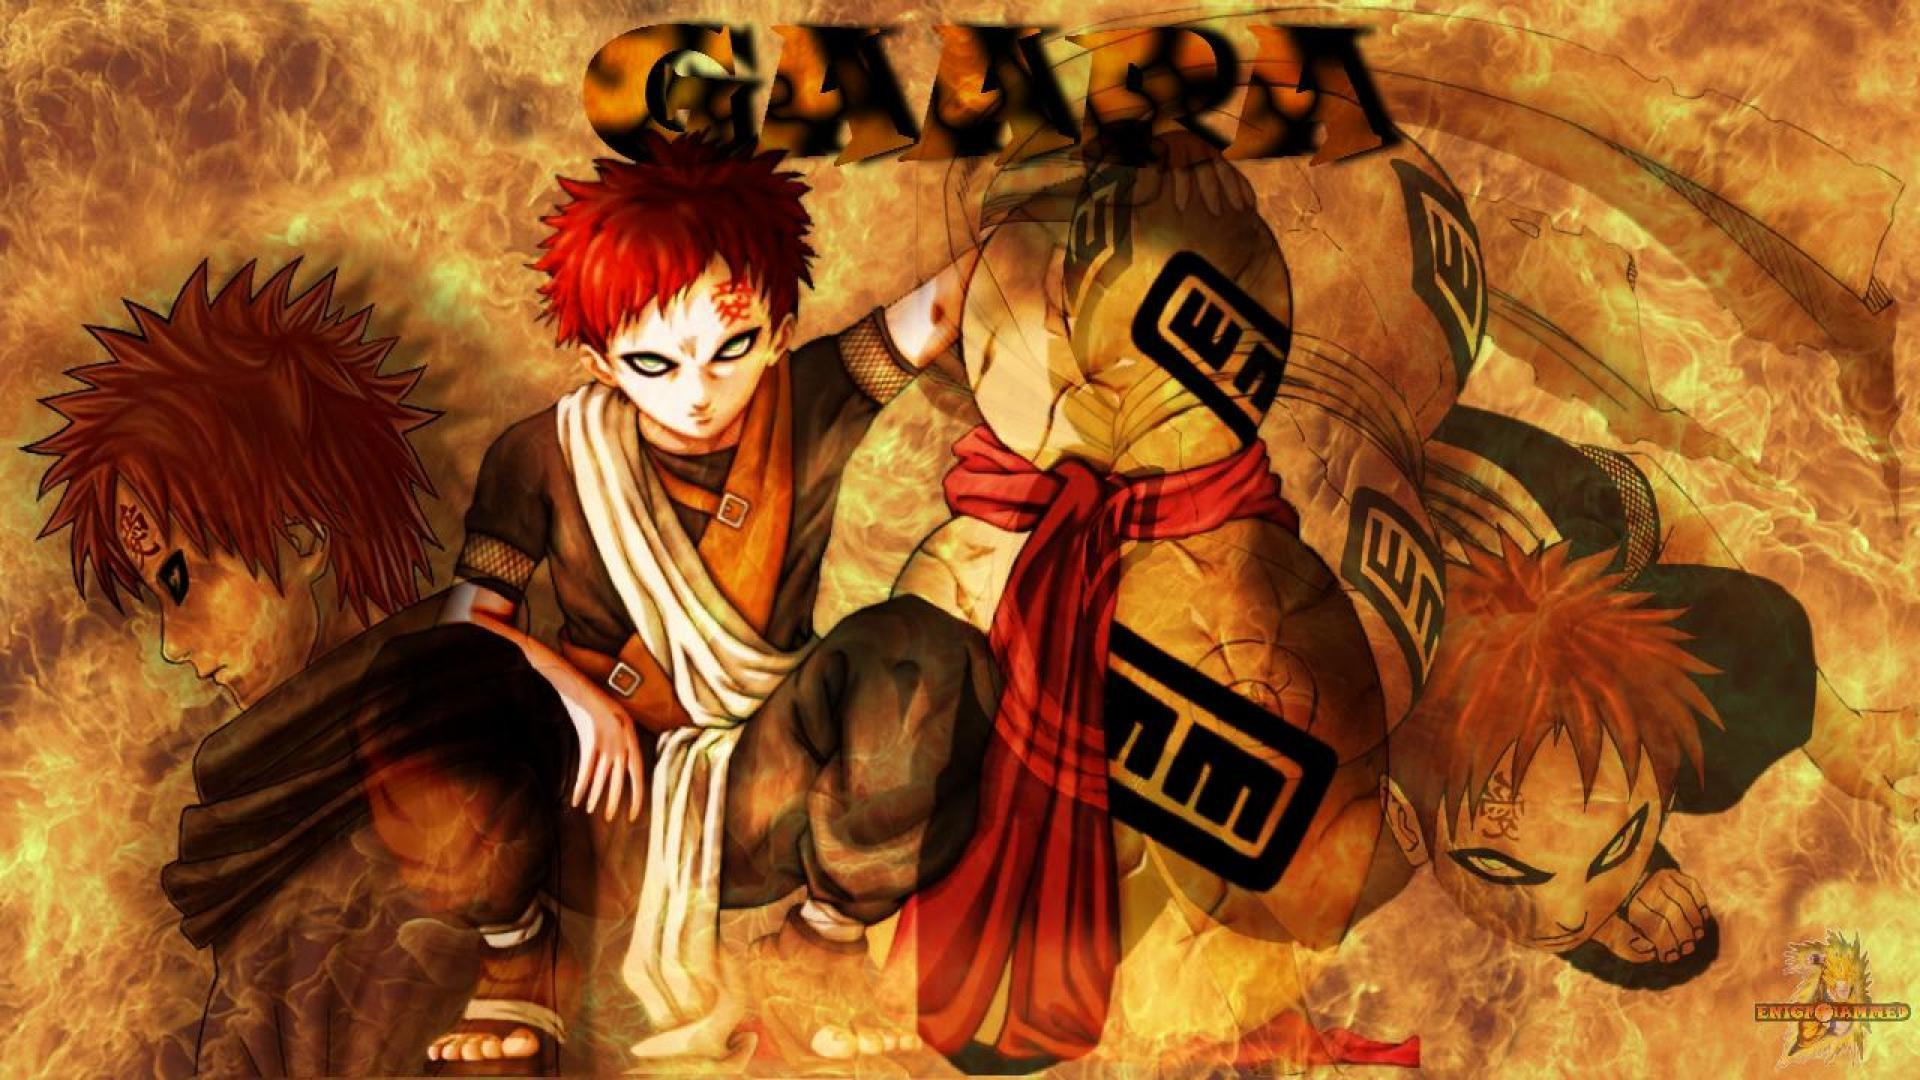 Gaara Wallpapers 1920x1080